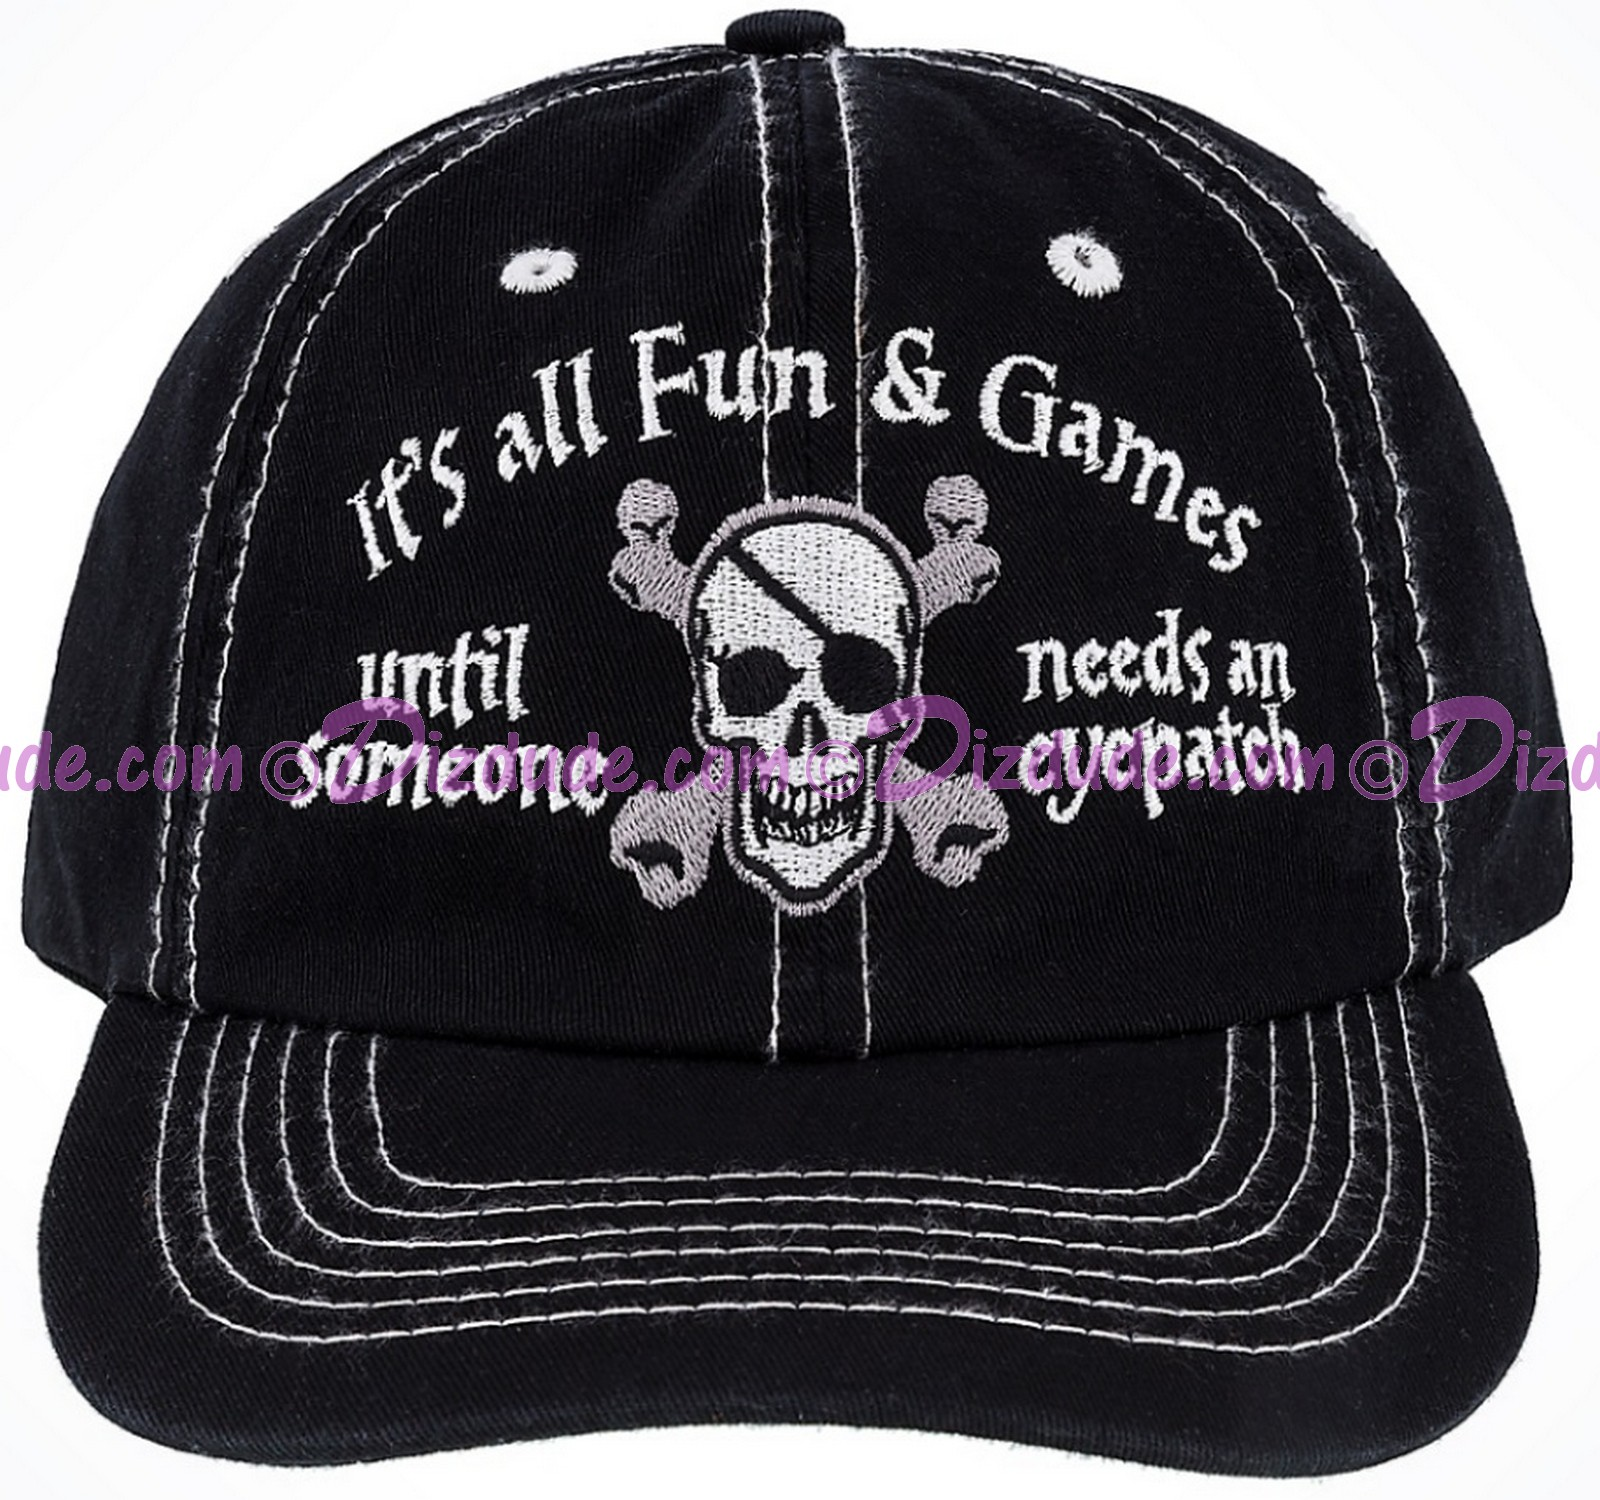 Disney's Pirates of the Caribbean Its All Fun & Games ... Until Someone Needs An Eyepatch Hat © Dizdude.com